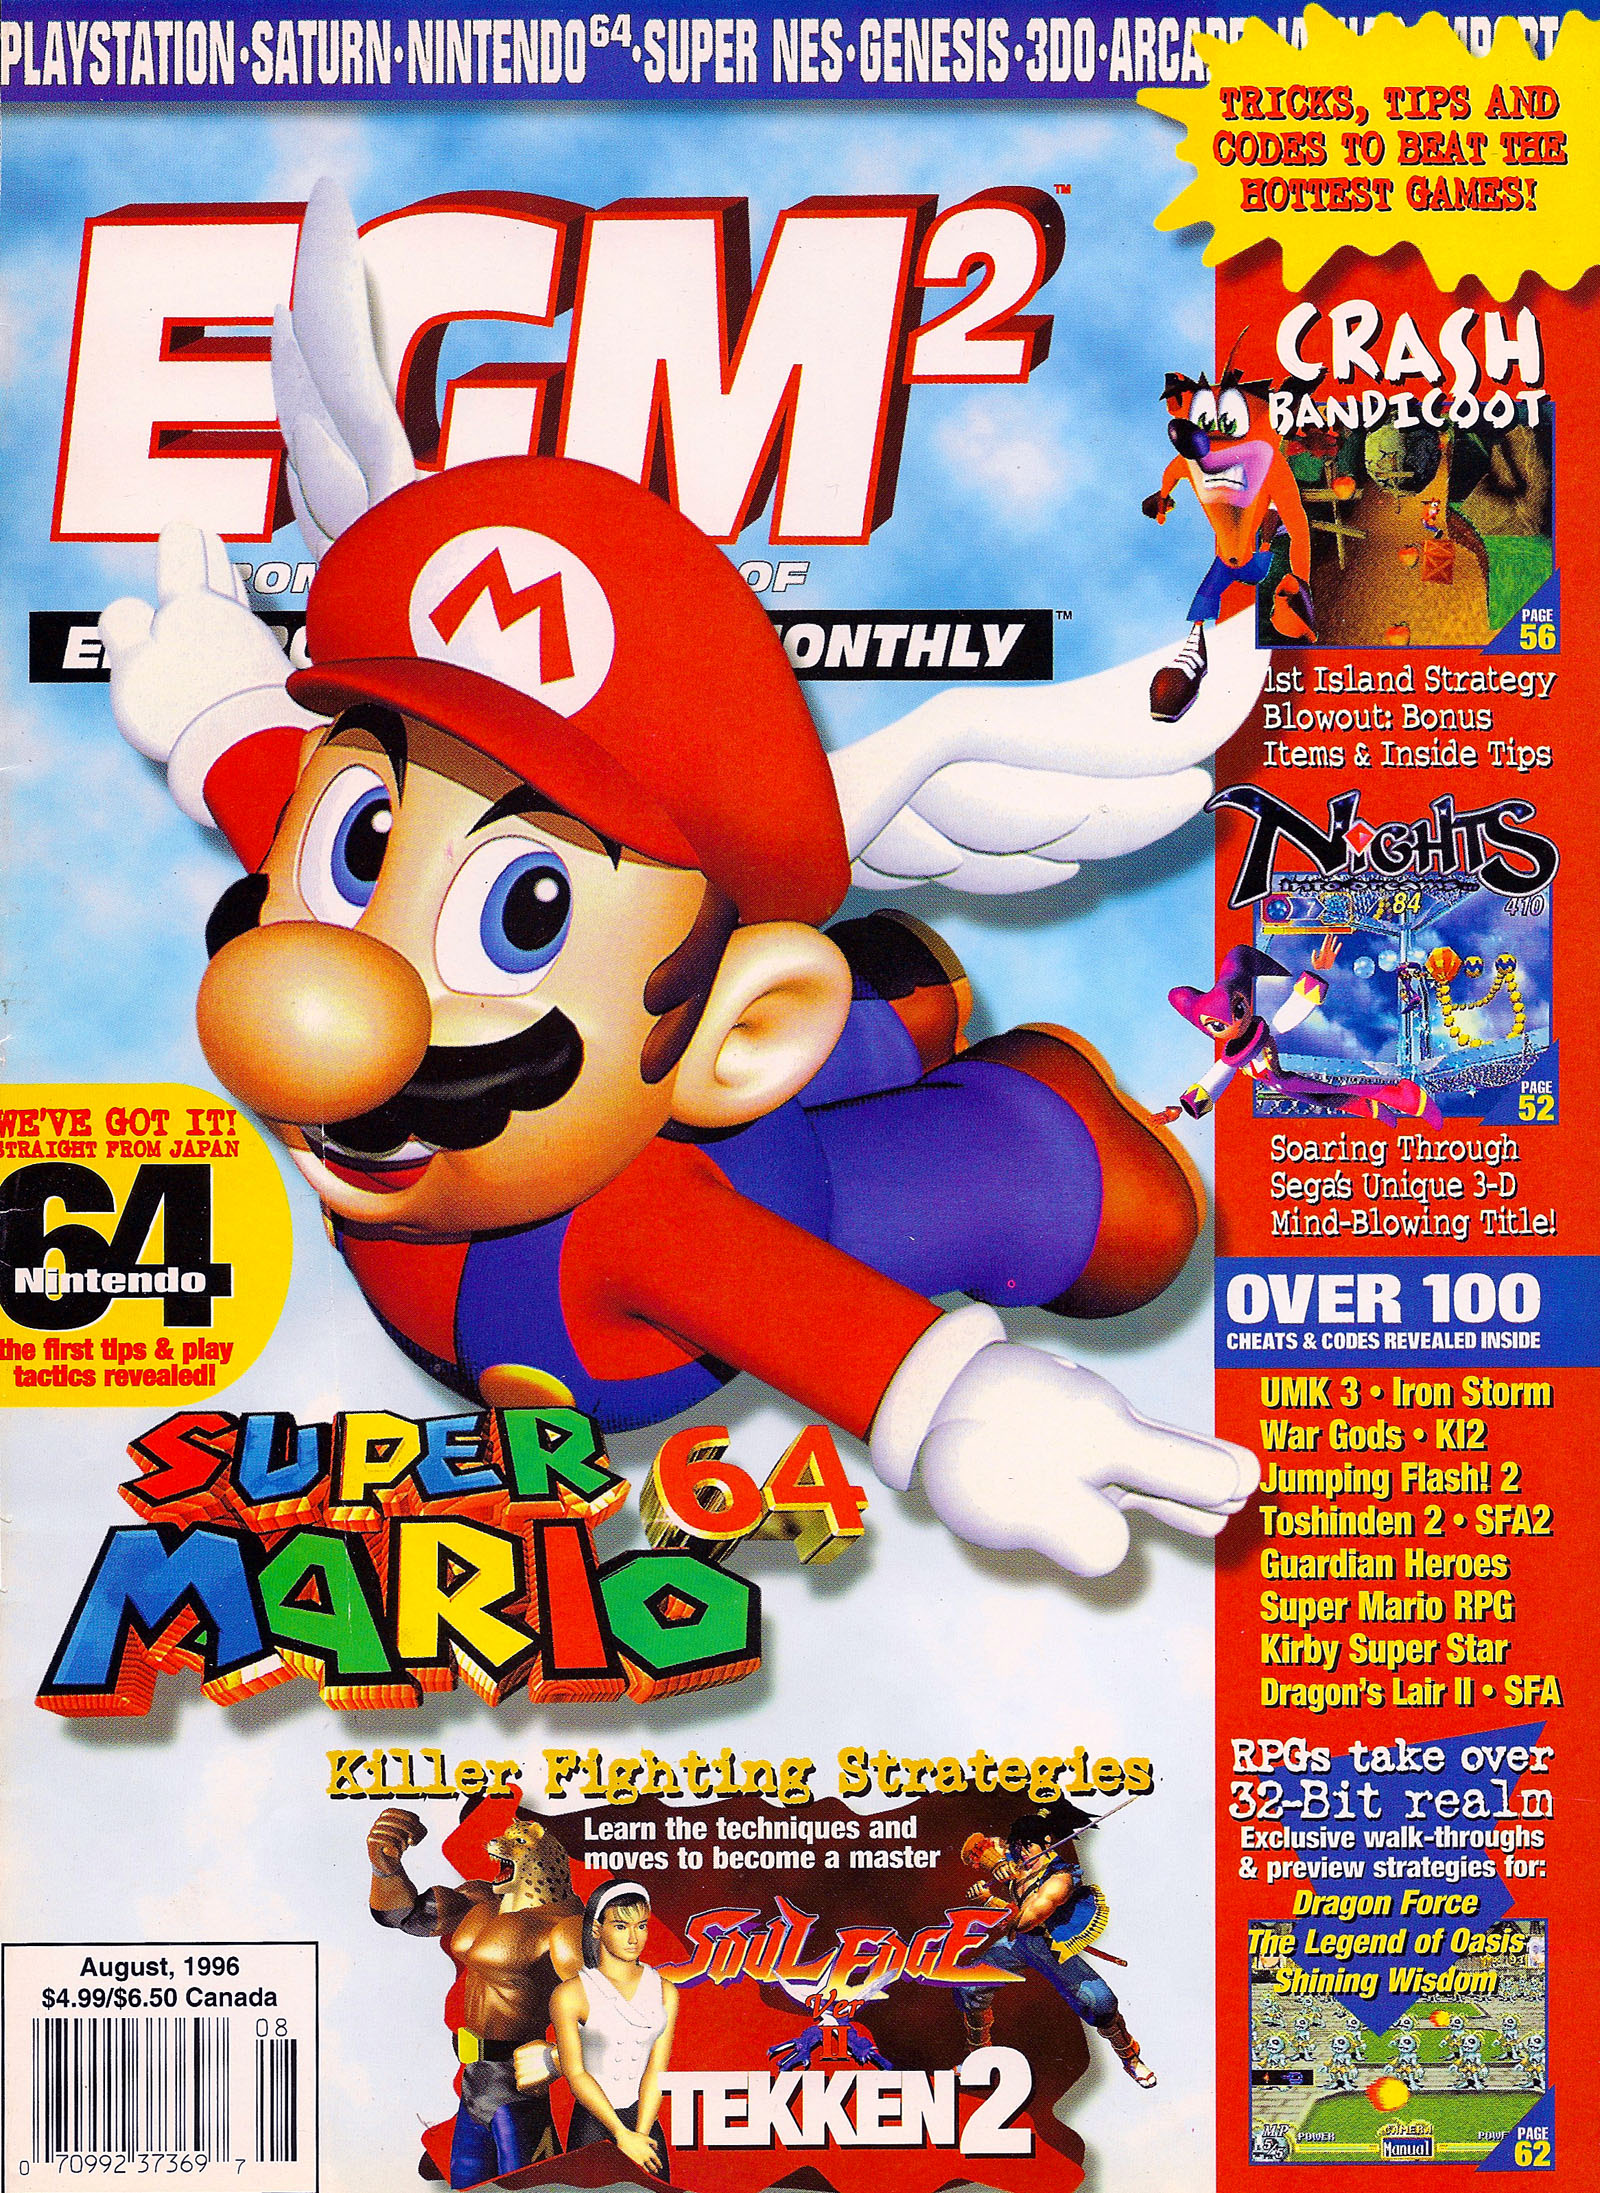 egm2-issue-026-august-1996-page-001